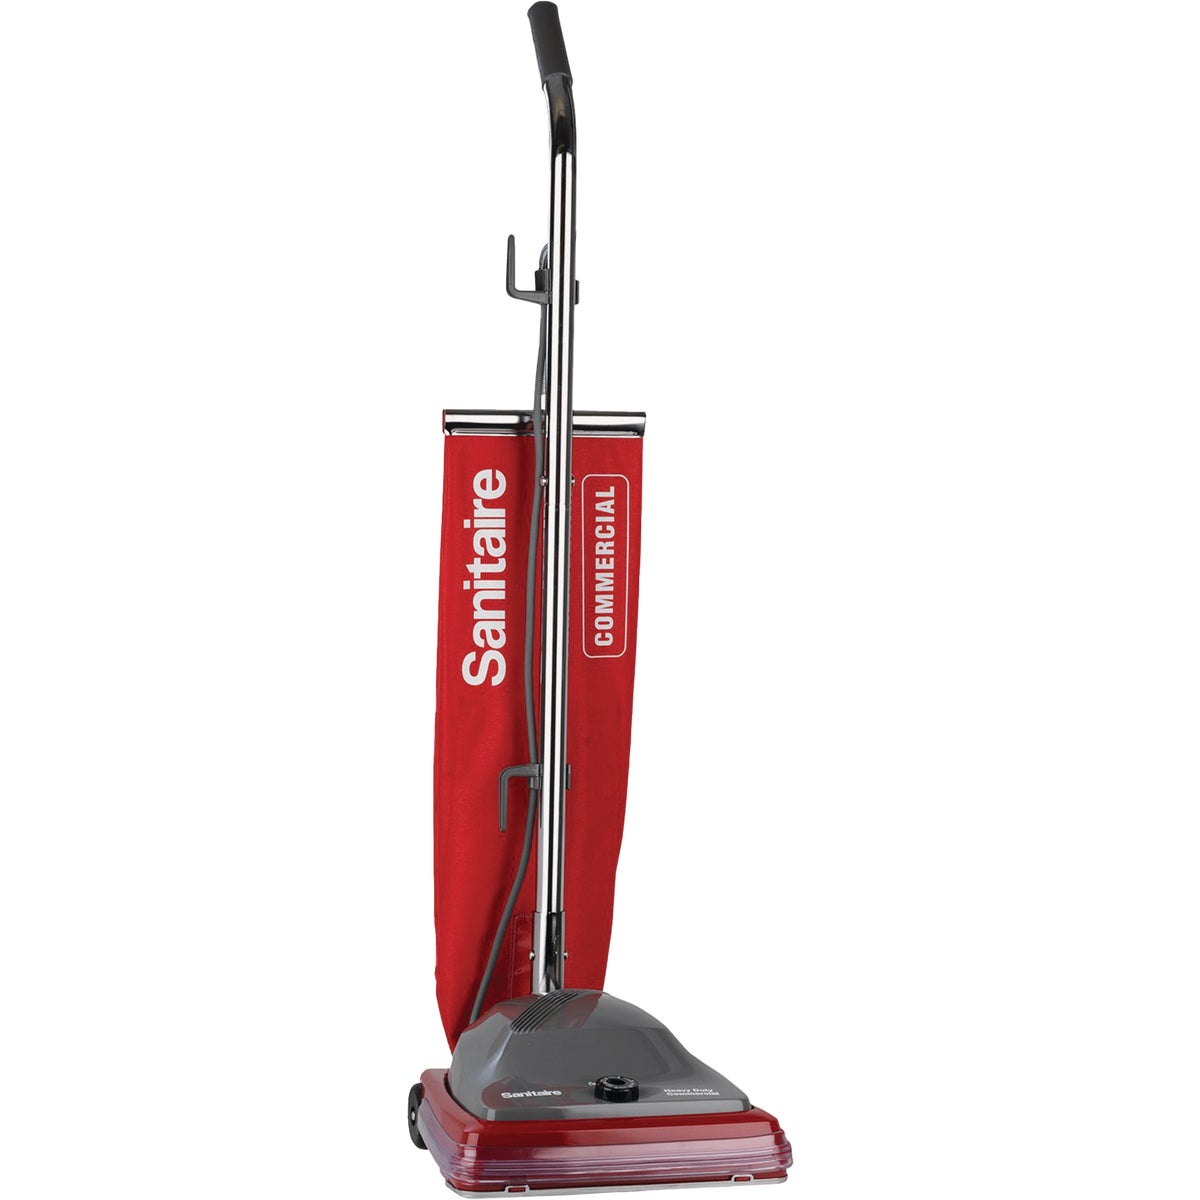 Electrolux Sanitaire By Electrolux 12 Commercial Upright Vacuum